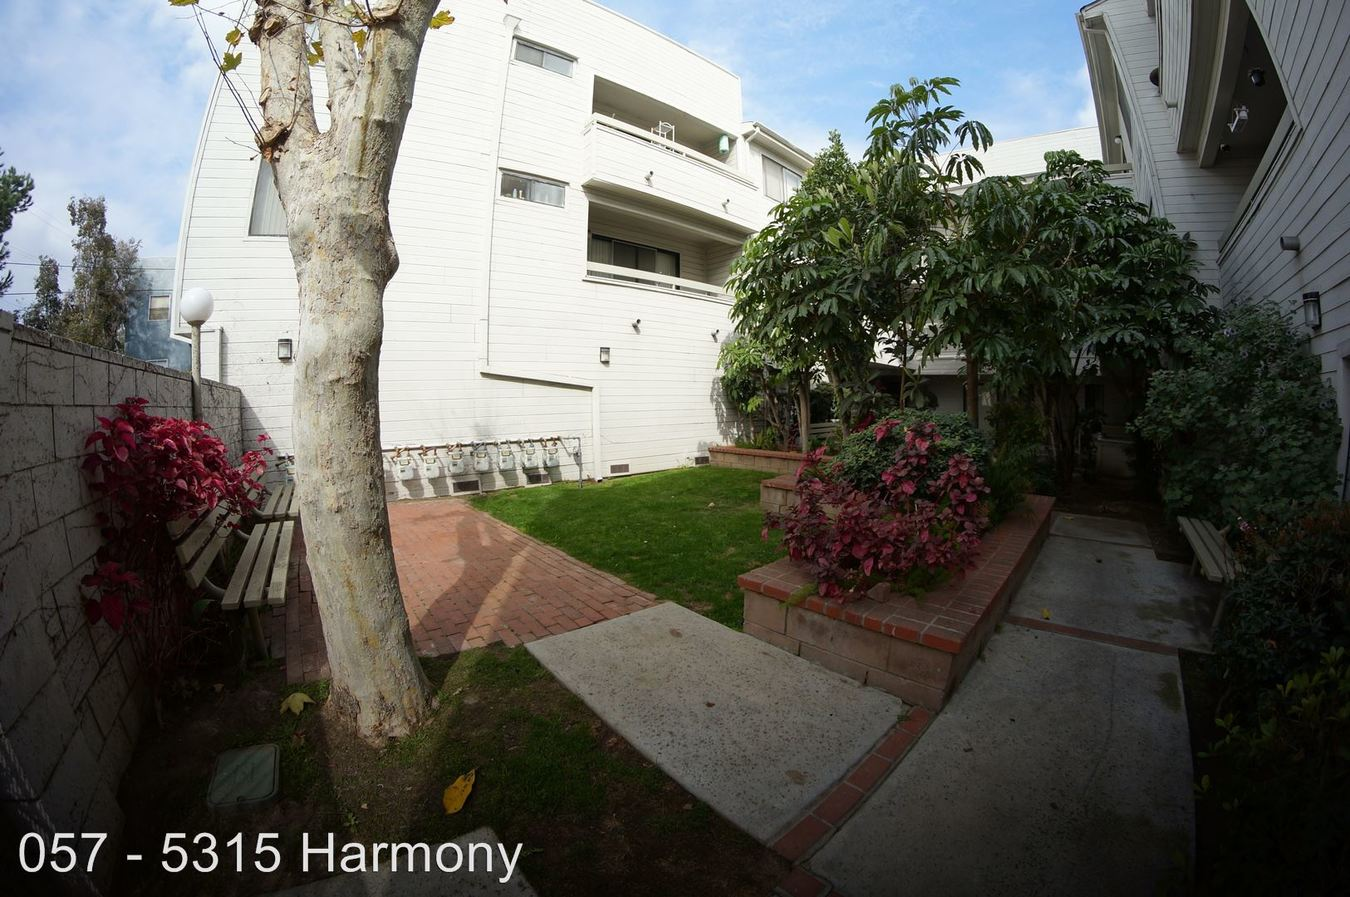 2 Bedrooms 1 Bathroom Apartment for rent at 5315 Harmony Ave. in North Hollywood, CA